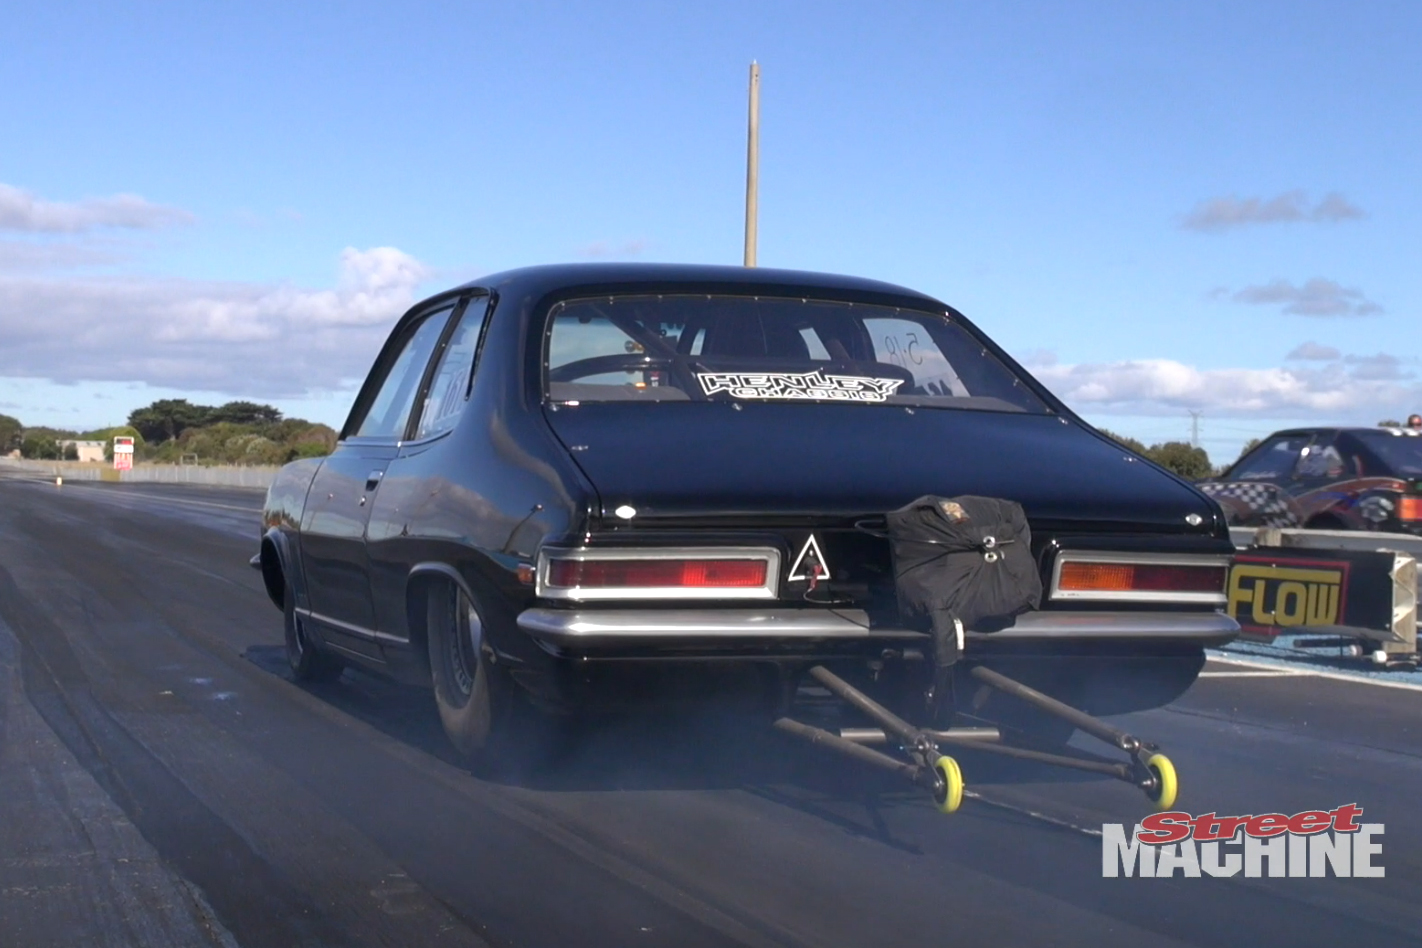 VIDEO: GORGEOUS HENLEY CHASSIS TORANA DRAG CAR